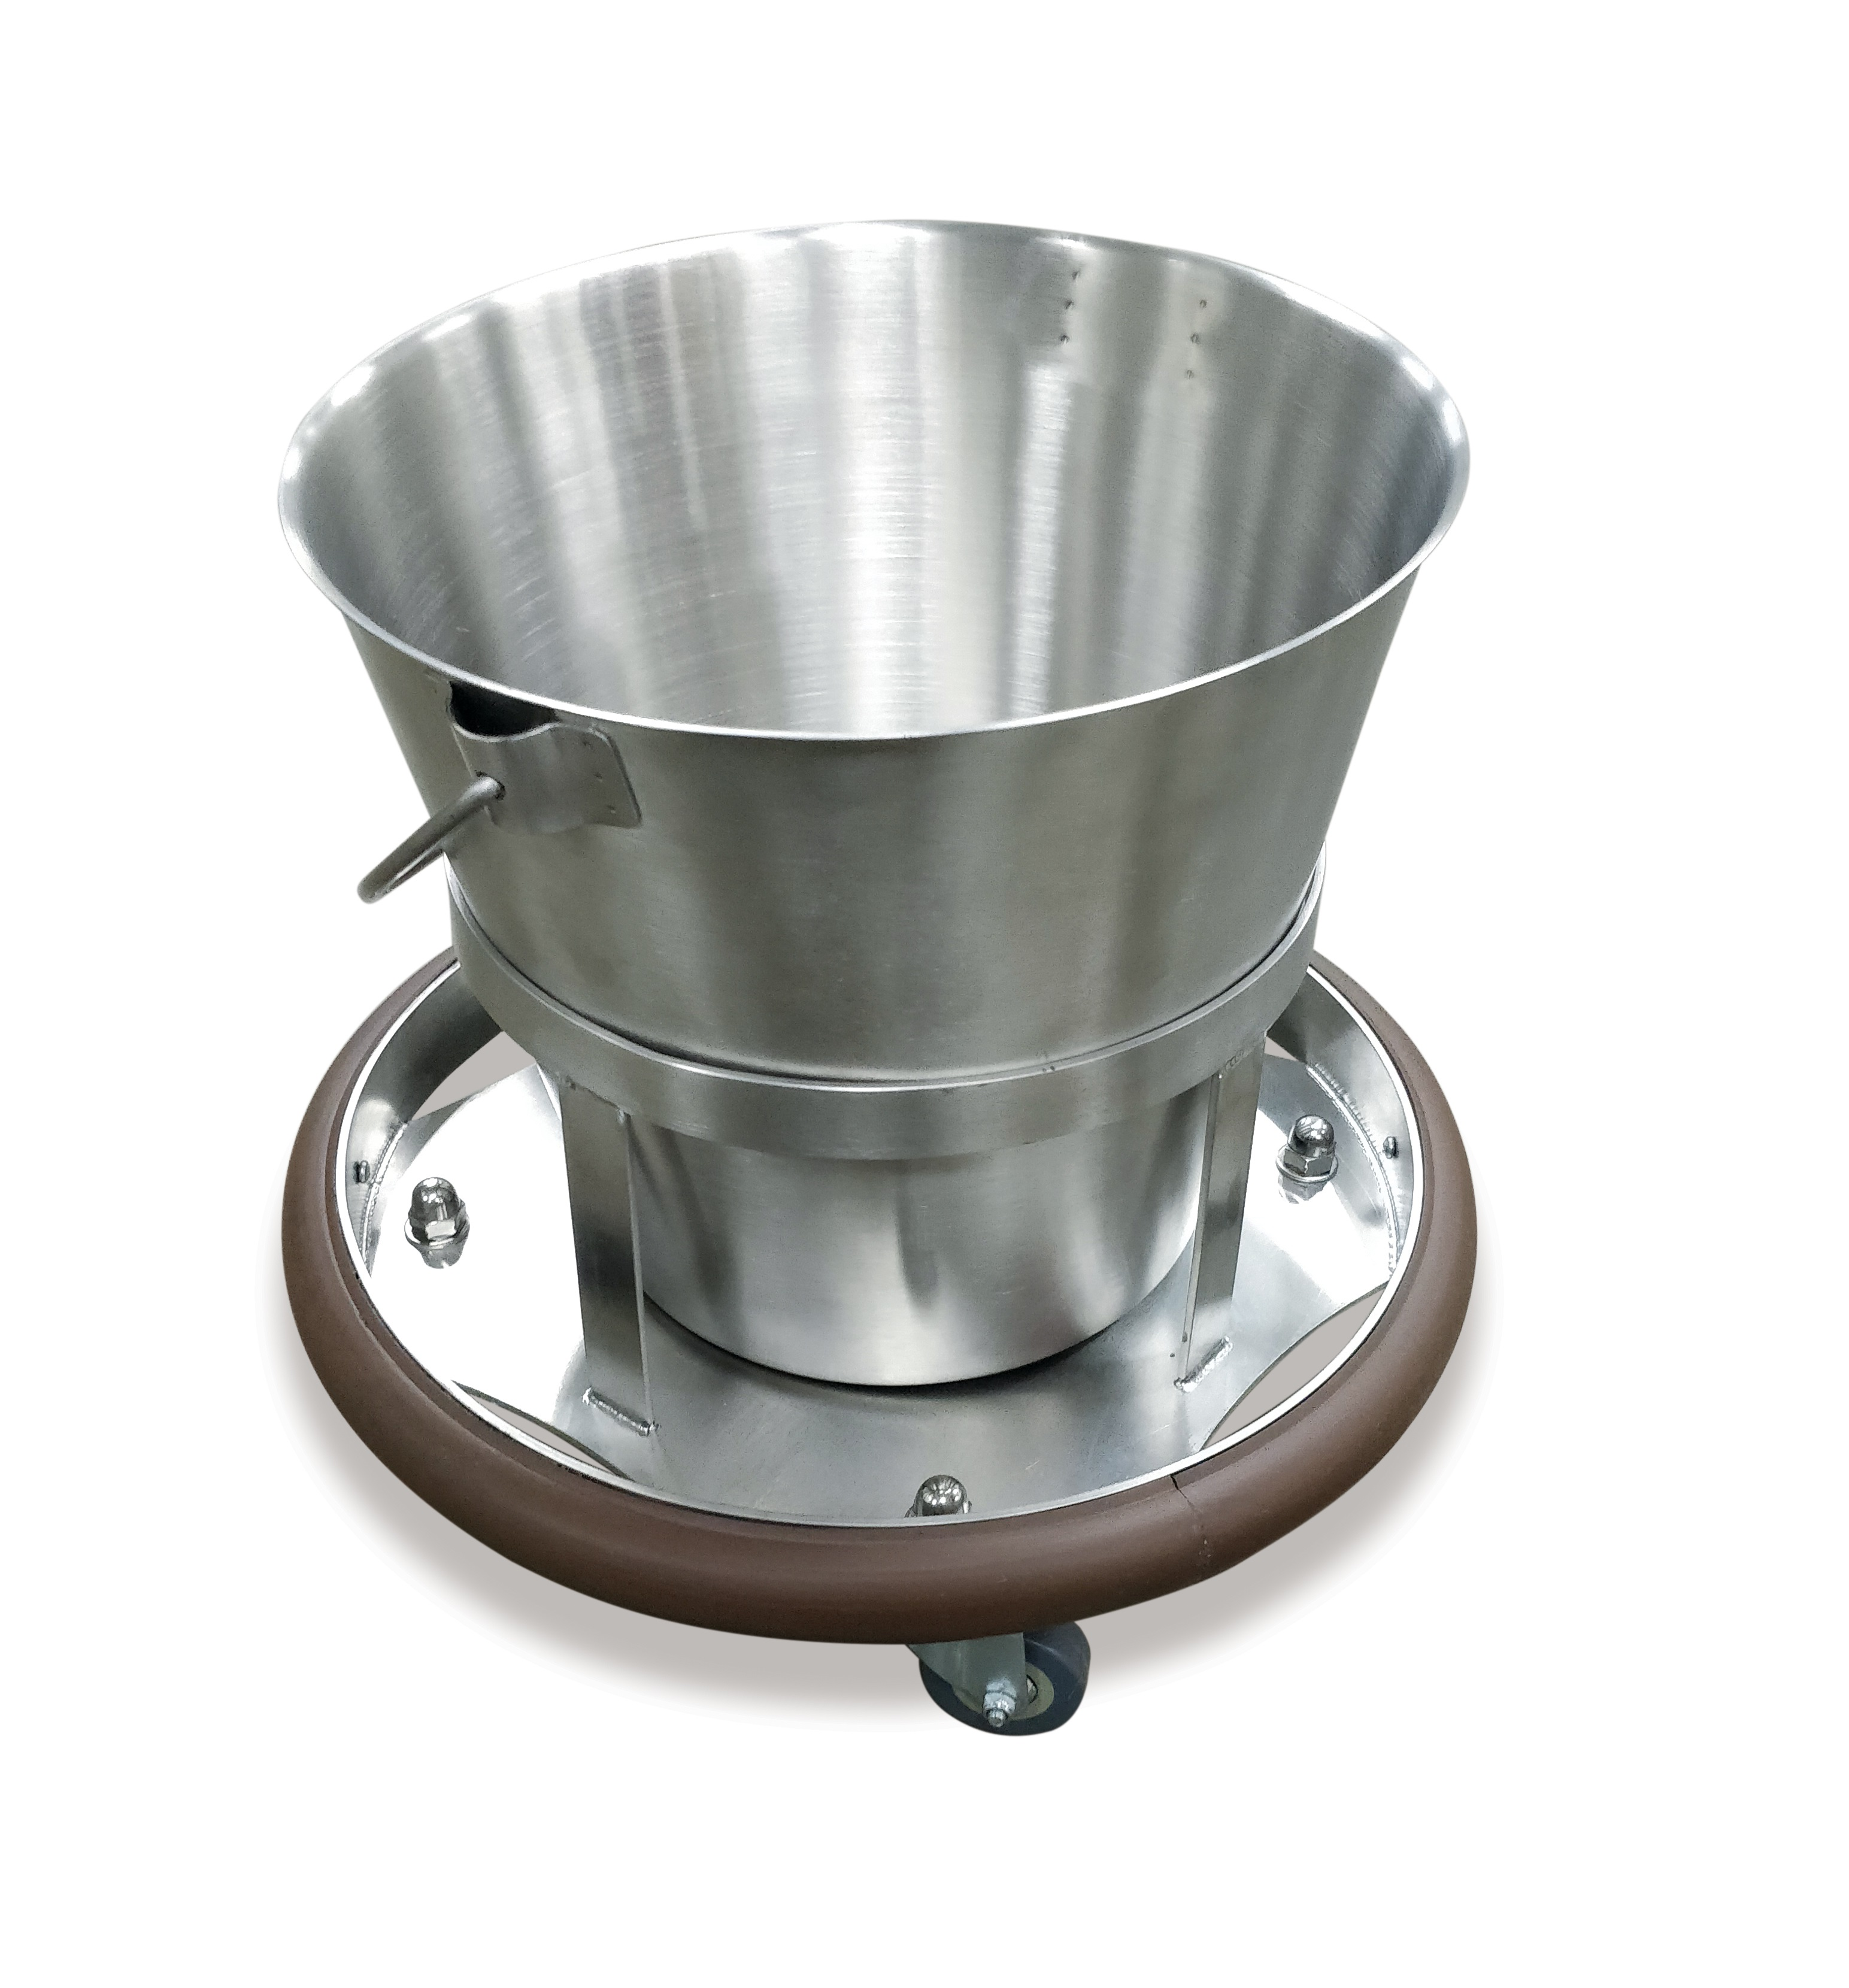 BUCKET SS ON MOBILE STAND (MS-8500)